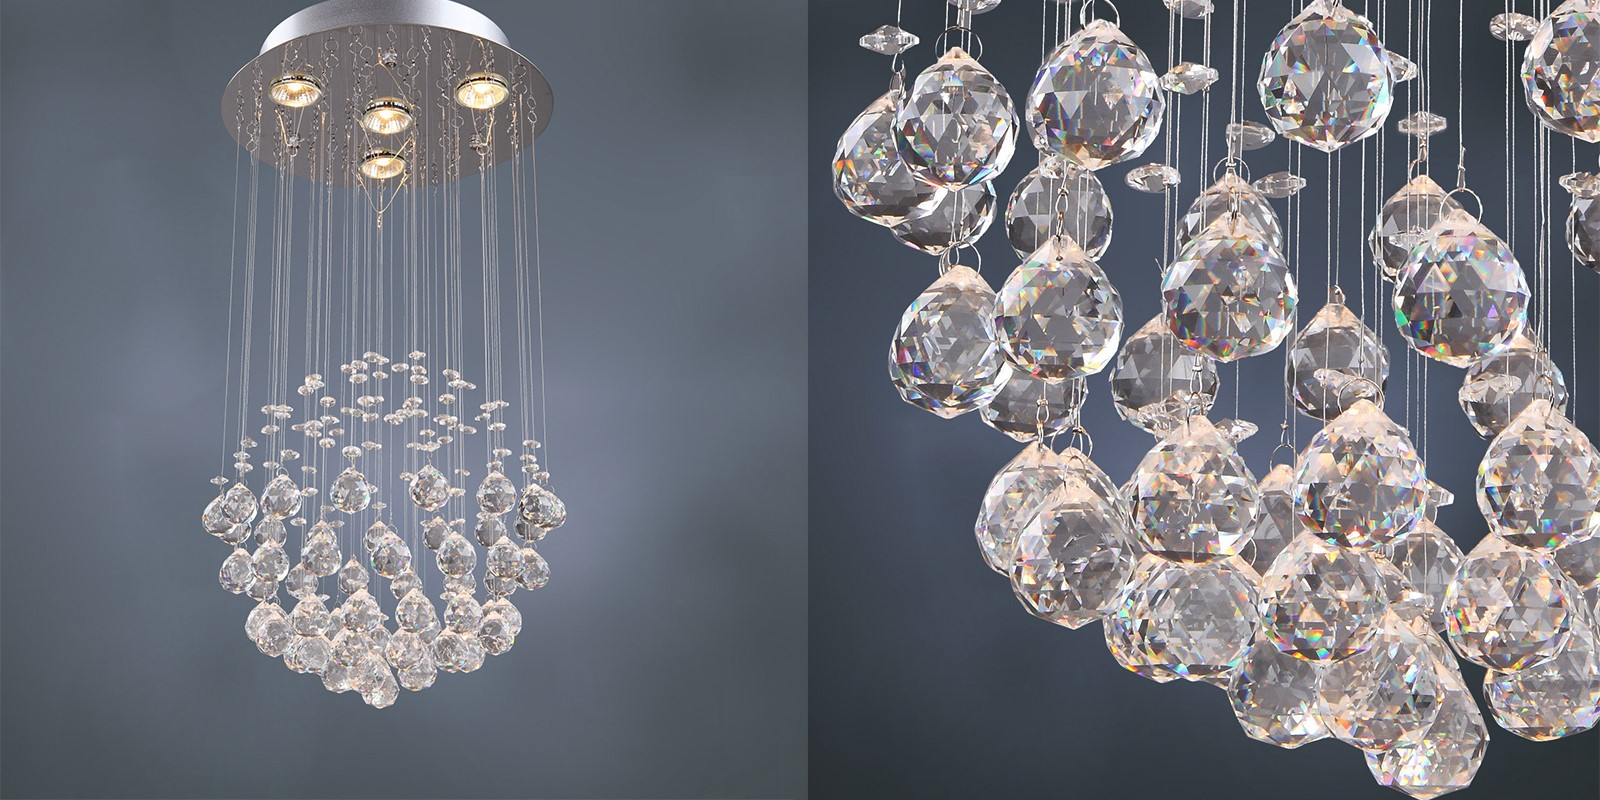 Blog Classical Chandeliers Join In This Discussion On Wiring A Modern Light Fitting Crystal Ball Raindrop Based Chandelier For Houses Rain Drop